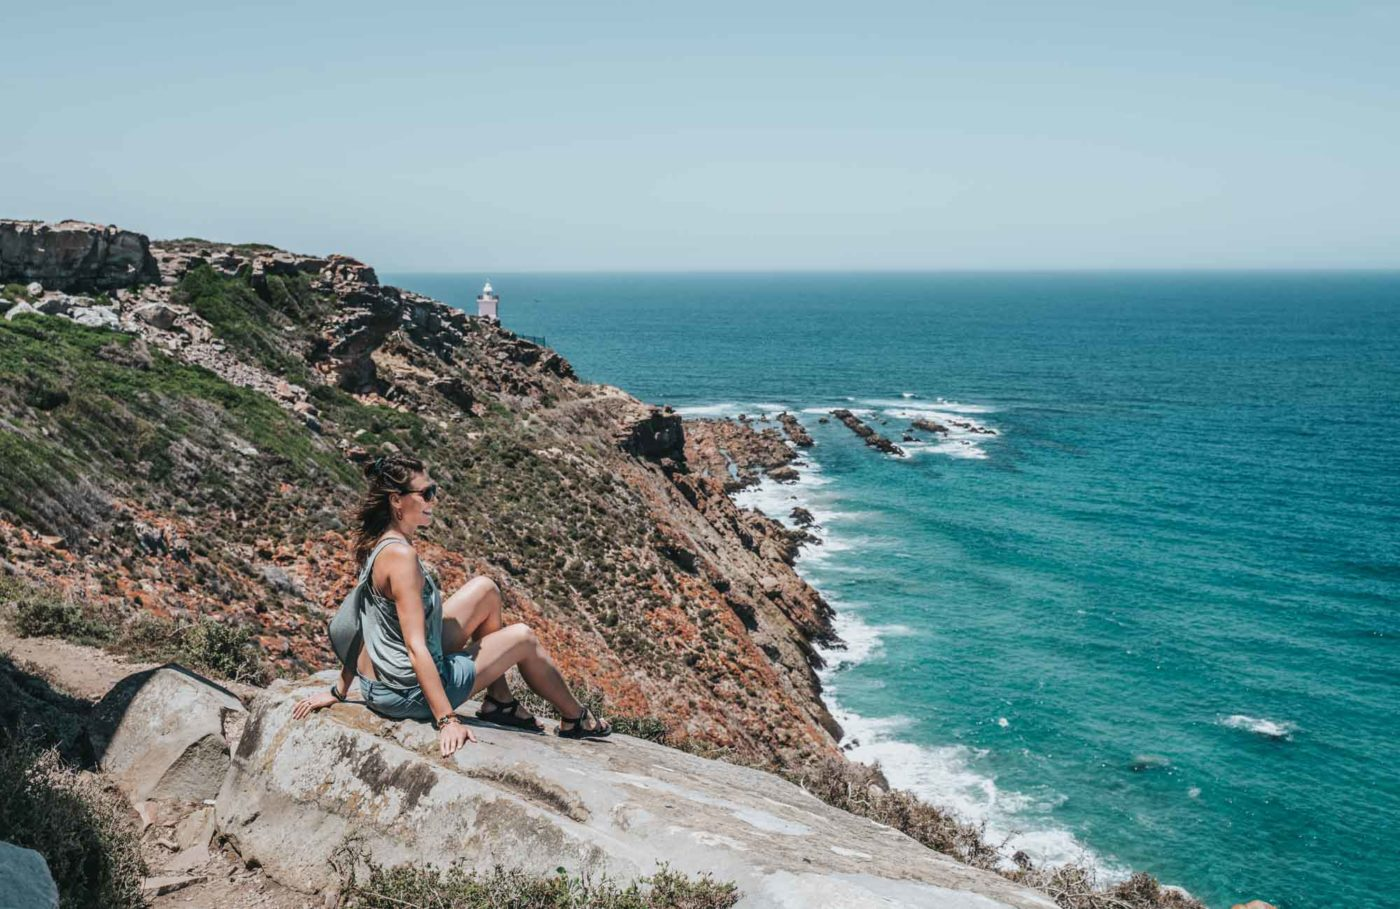 Overlooking the ocean from St Blaize Trail in Mossel Bay, Garden Route